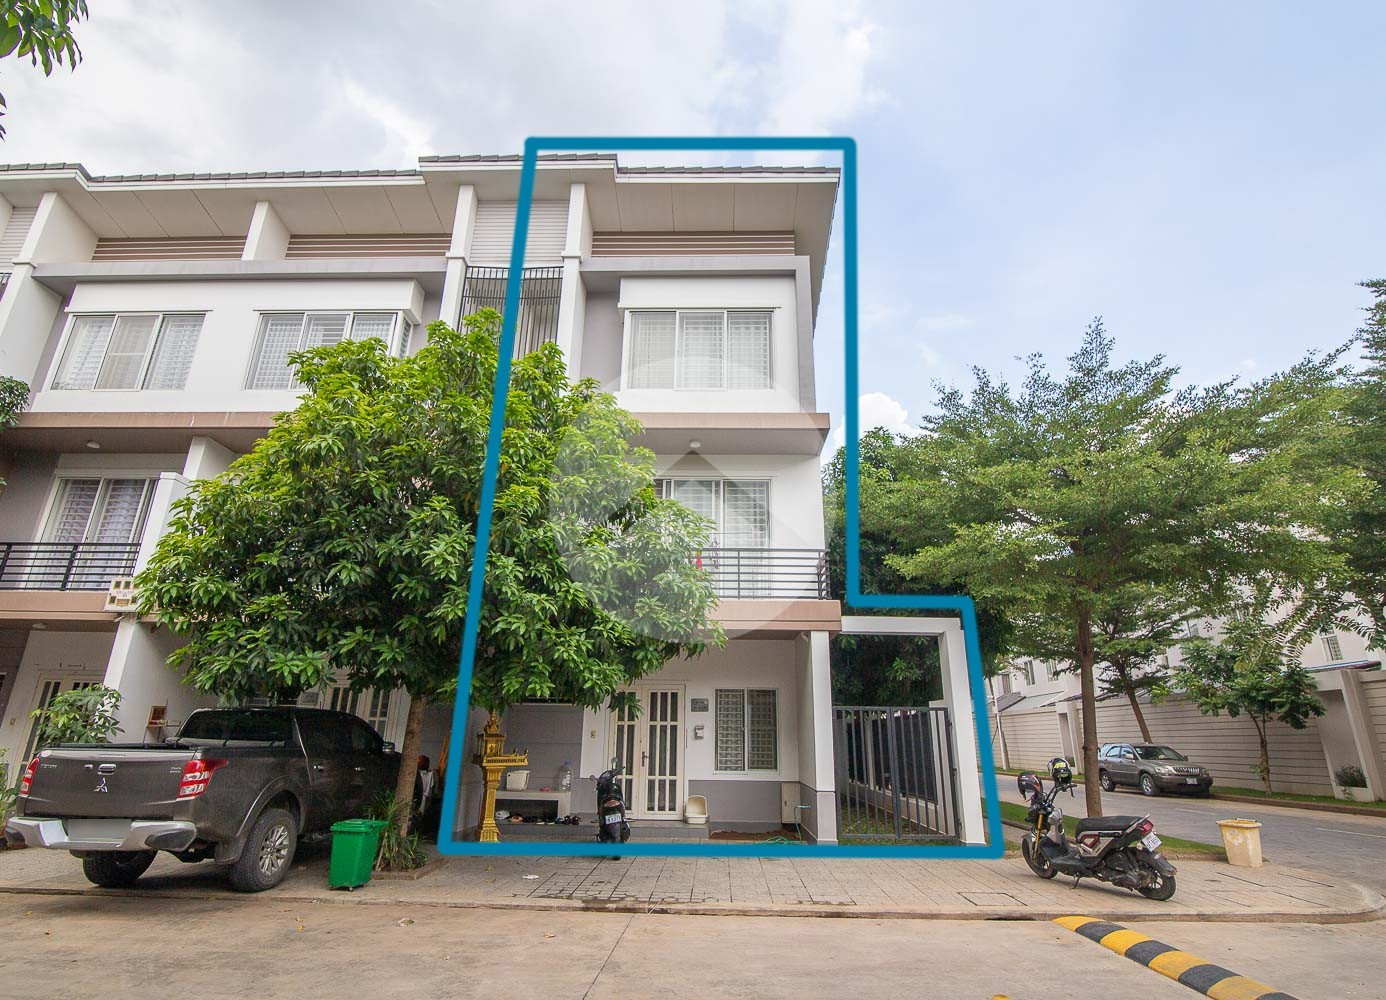 3 Bedroom Linked House For Sale - Nirouth, Phnom Penh